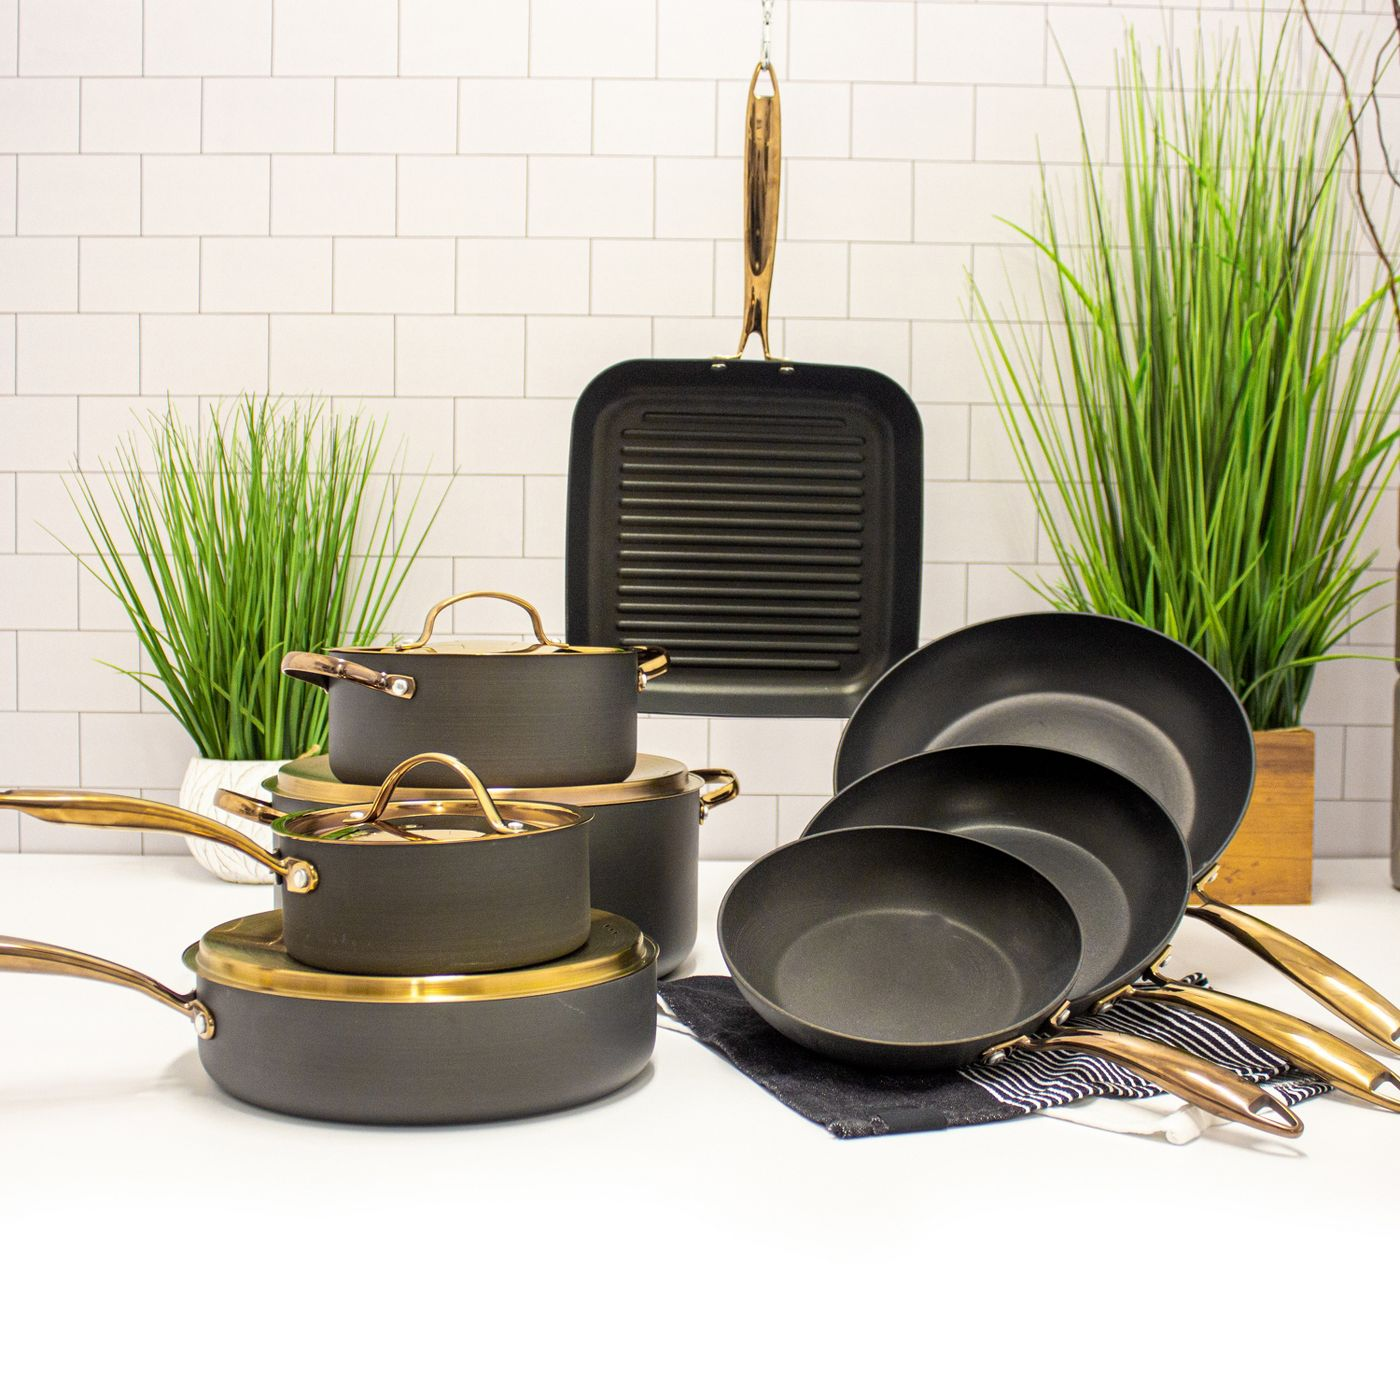 BergHOFF Ouro Deluxe 12-Piece Hard-Anodized Nonstick Cookware Set